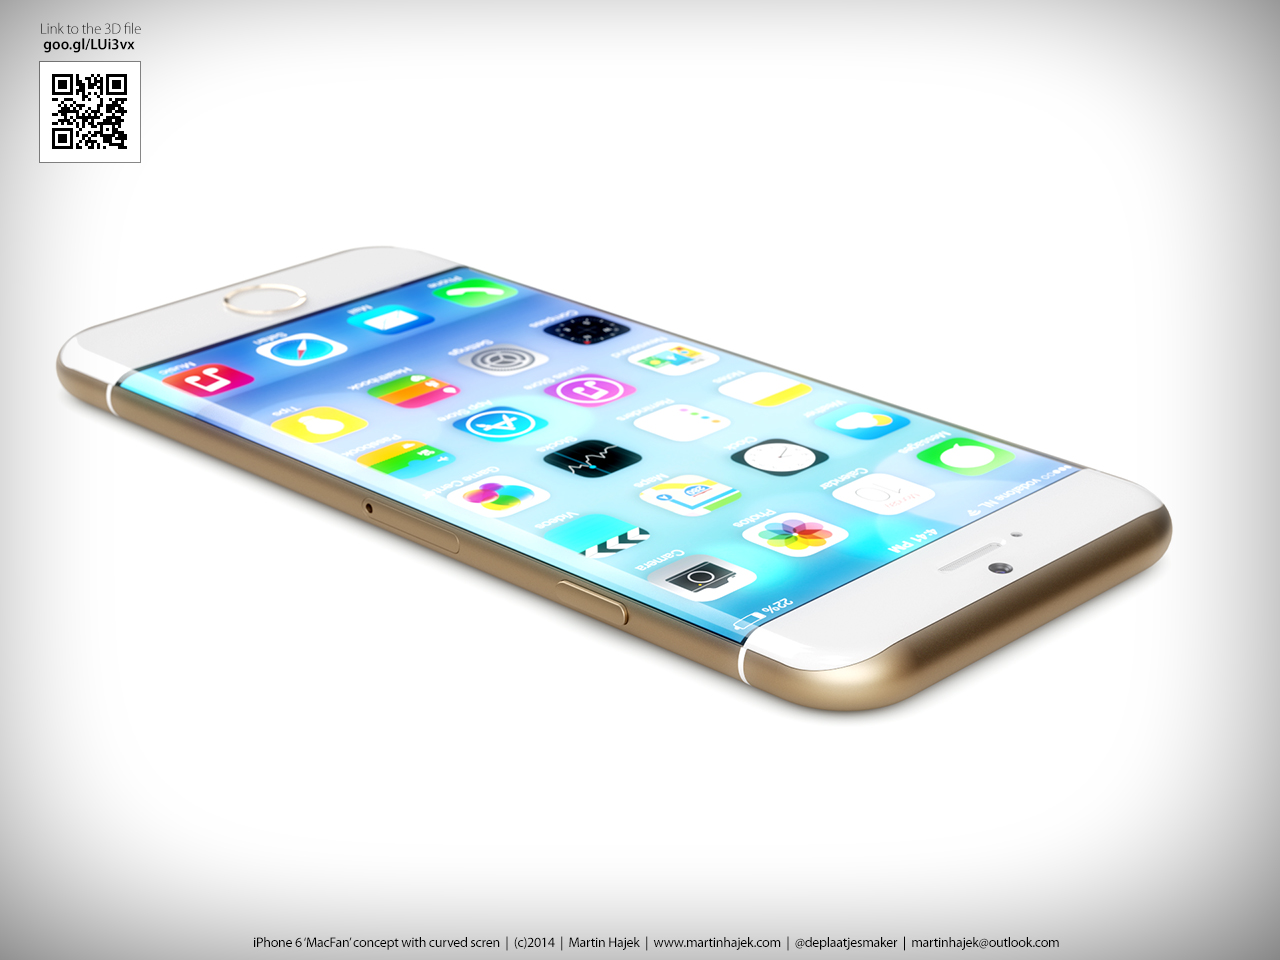 iphone 6 rumors photos of iphone 6 with curved display and case bgr. Black Bedroom Furniture Sets. Home Design Ideas